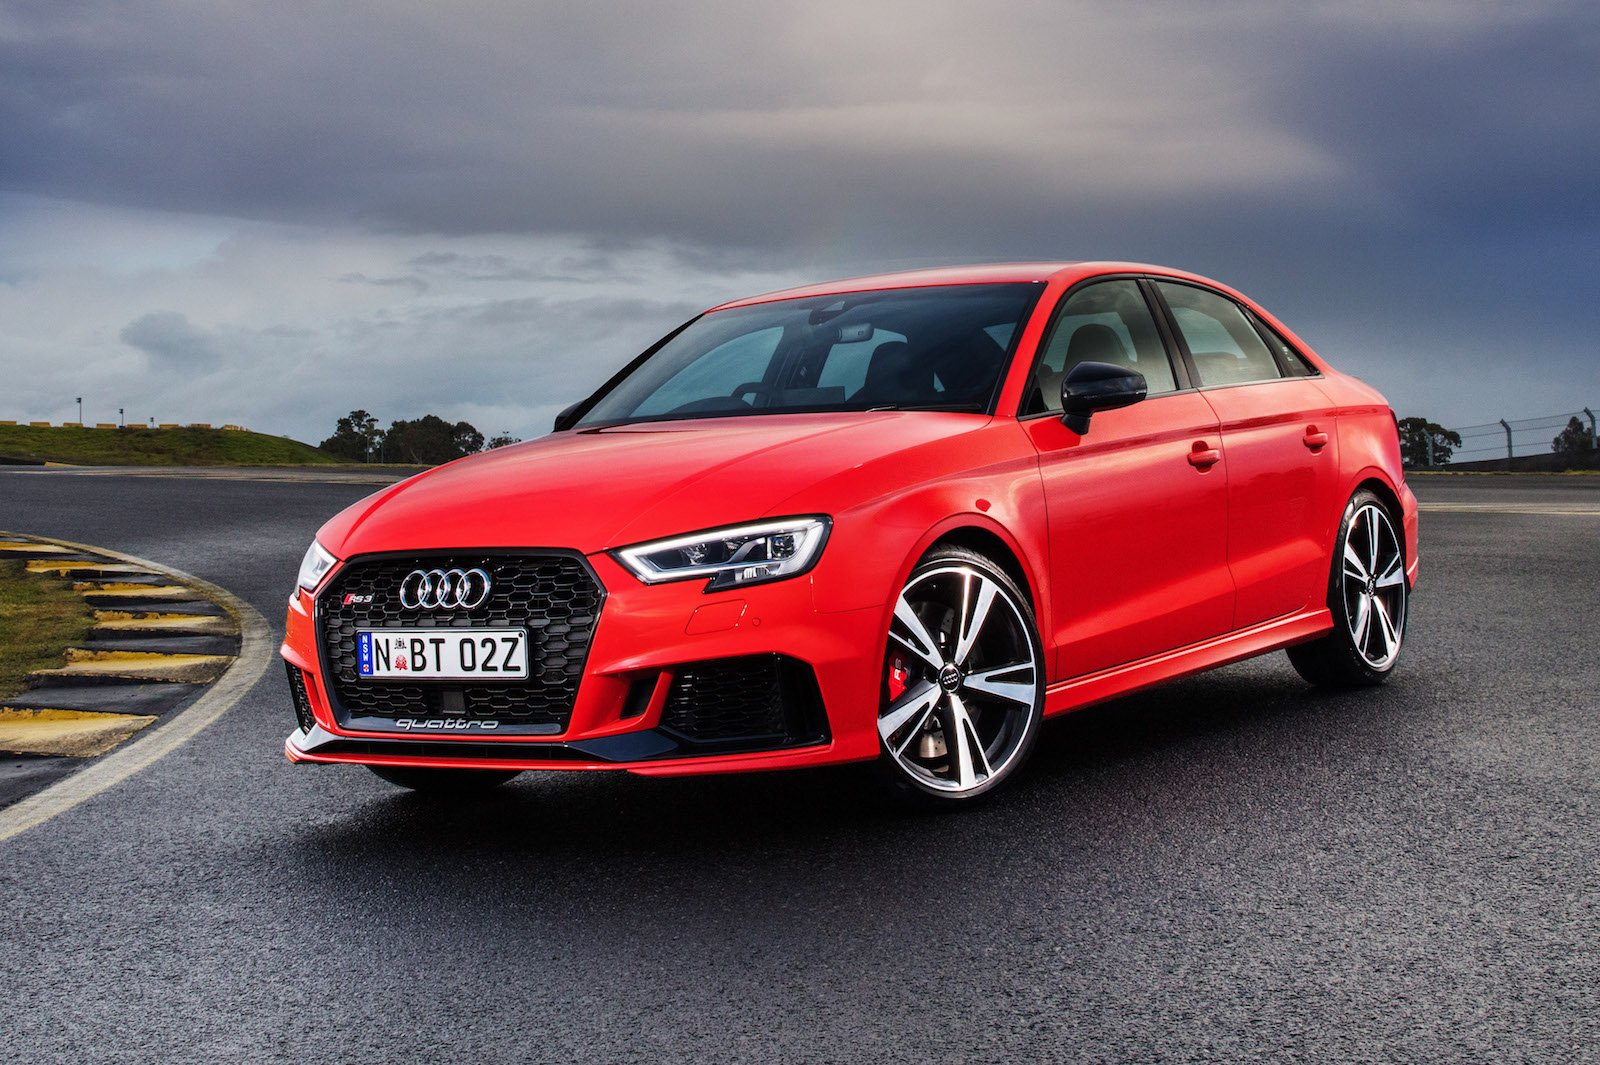 New Audi Rs 3 Sedan Now On Sale In Australia From 84 900